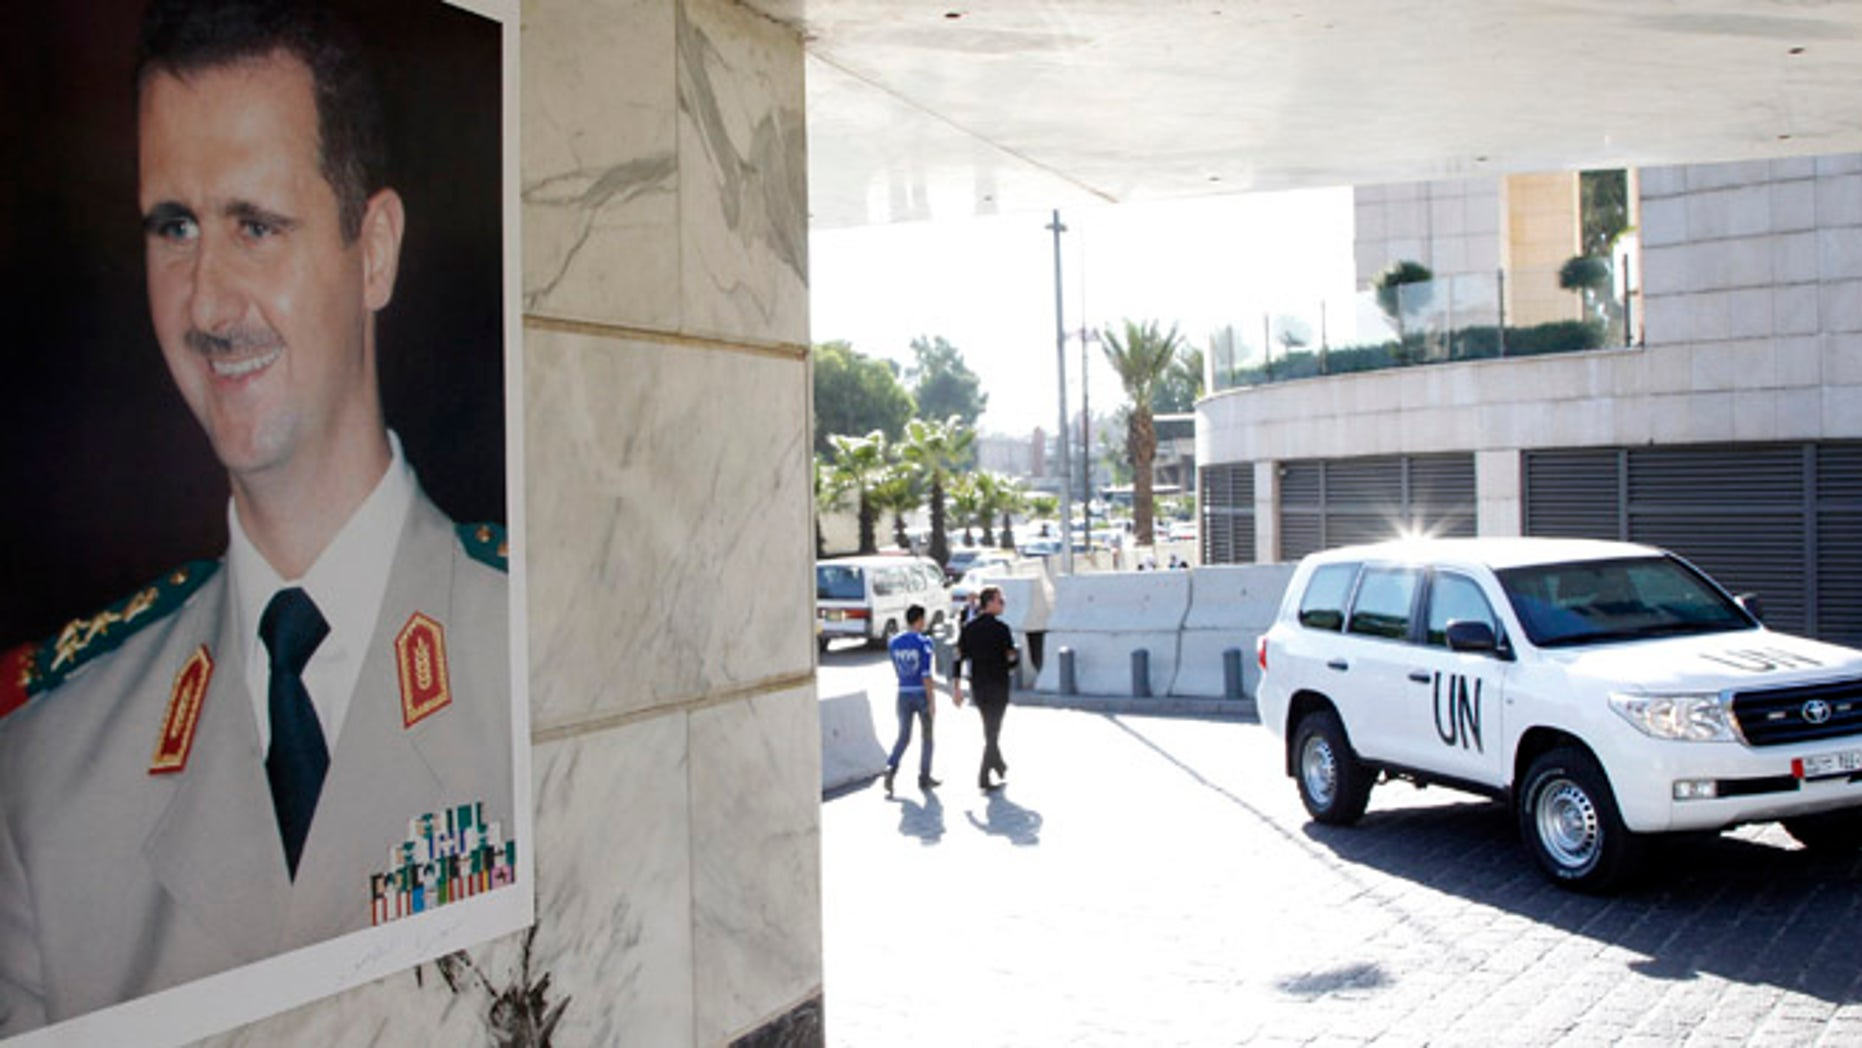 Oct. 8, 2013: A U.N. vehicle is seen near a photo of Syrian President Bashar al-Assad at the entrance of a hotel where a team of experts from the Organisation for the Prohibition of Chemical Weapons (OPCW) were staying in Damascus. (Reuters)